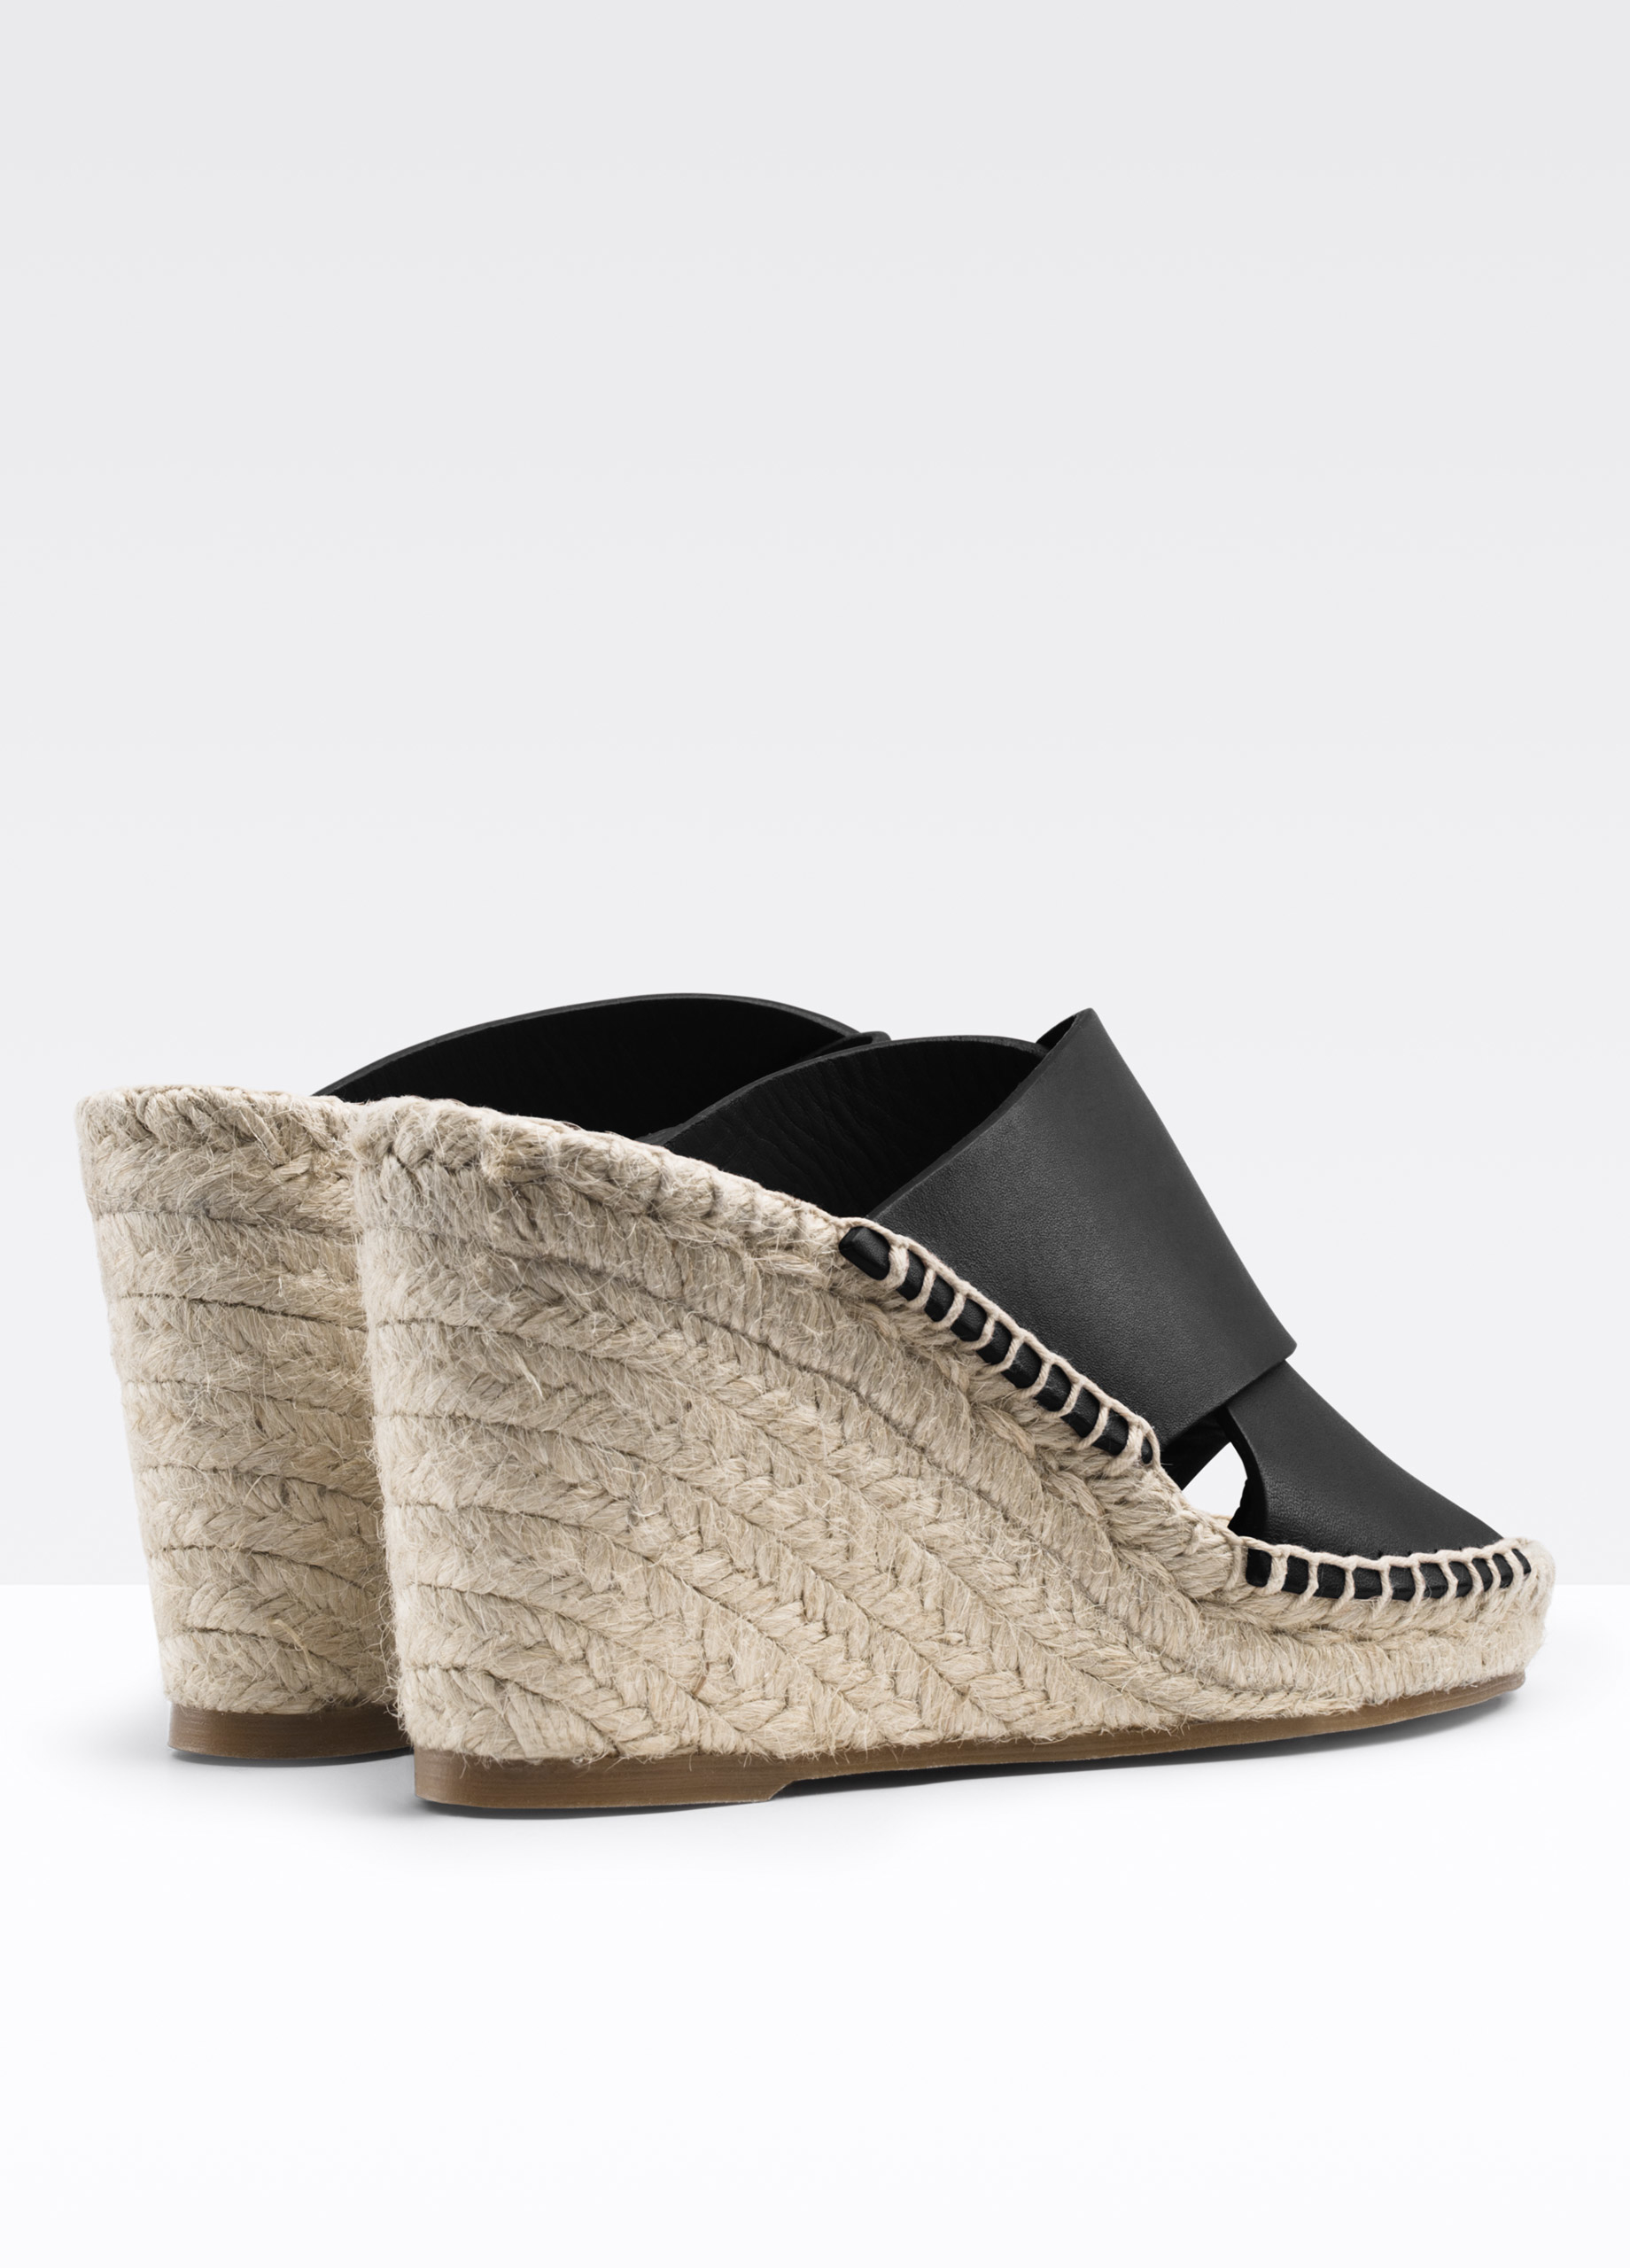 Vince Suraya Leather Espadrille Wedge Sandal In Black Lyst